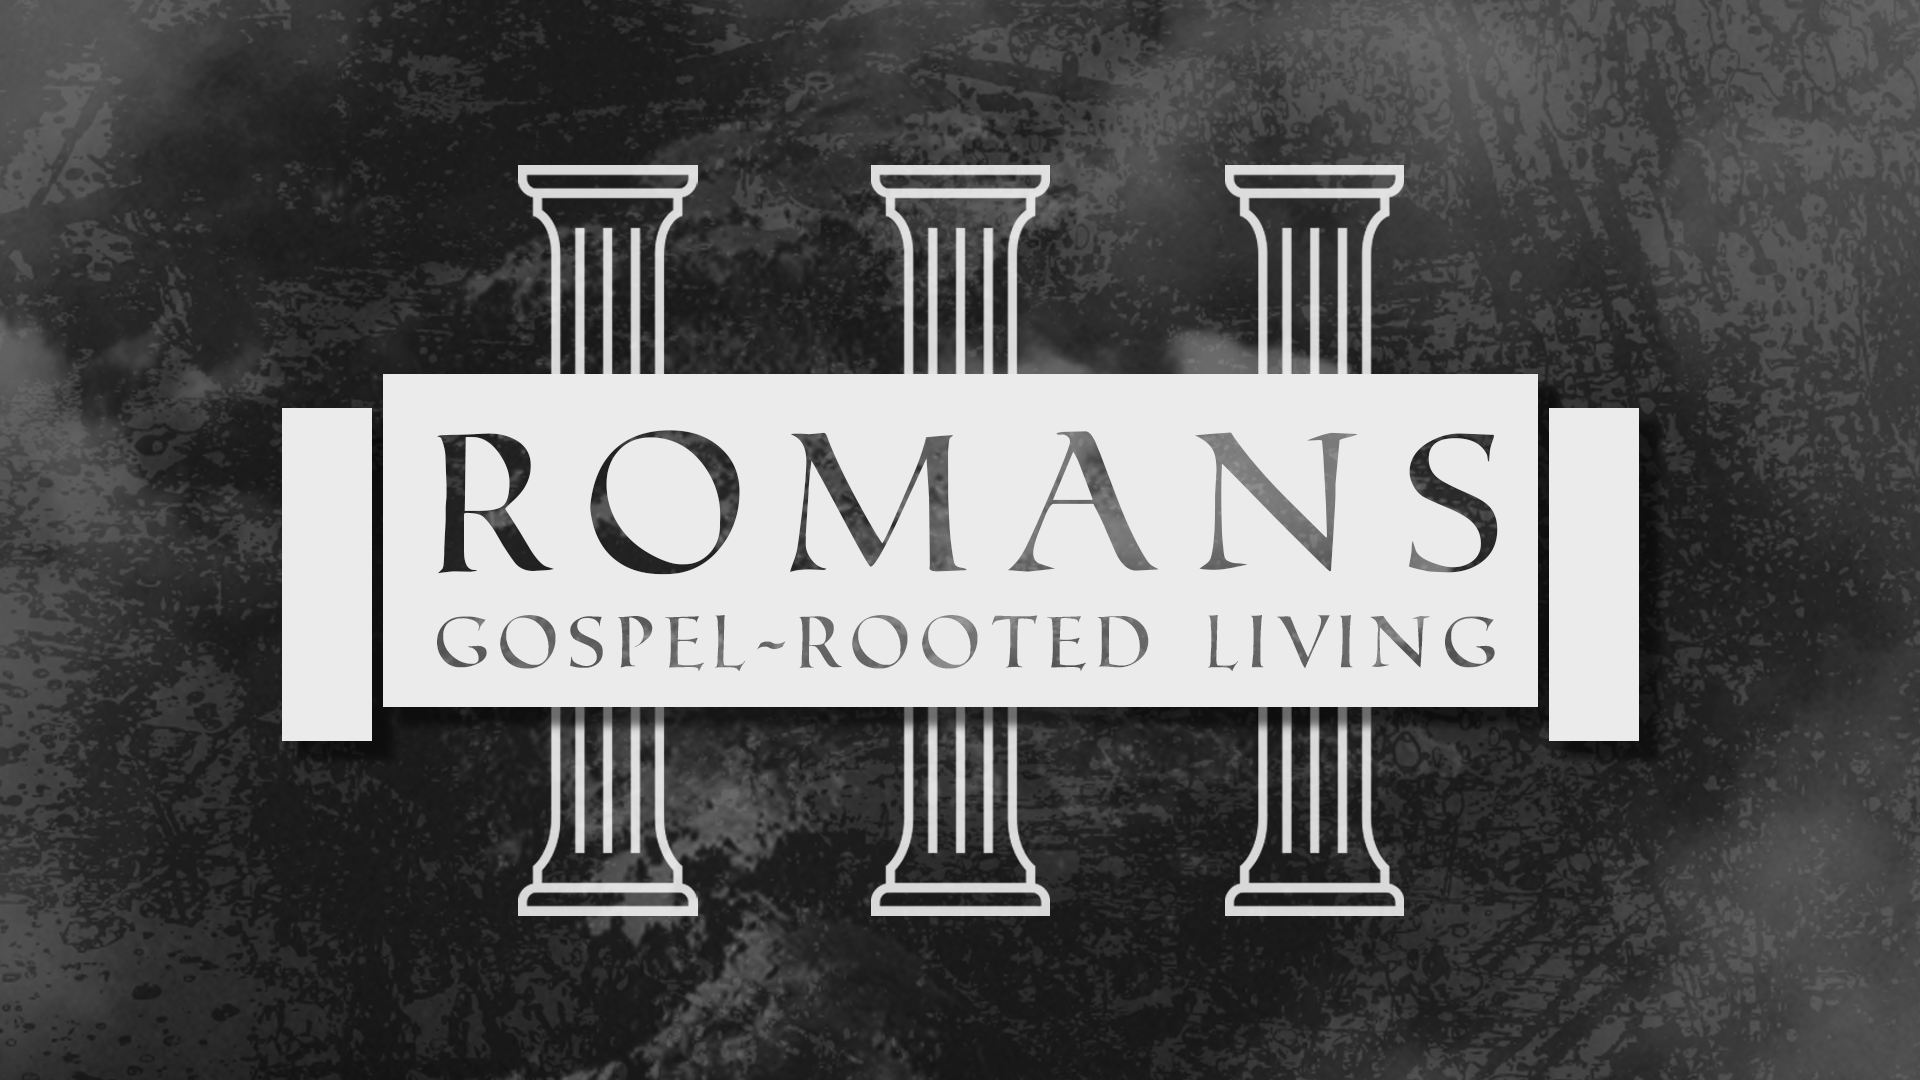 March 15, 2020 – Romans: Gospel-Rooted Living